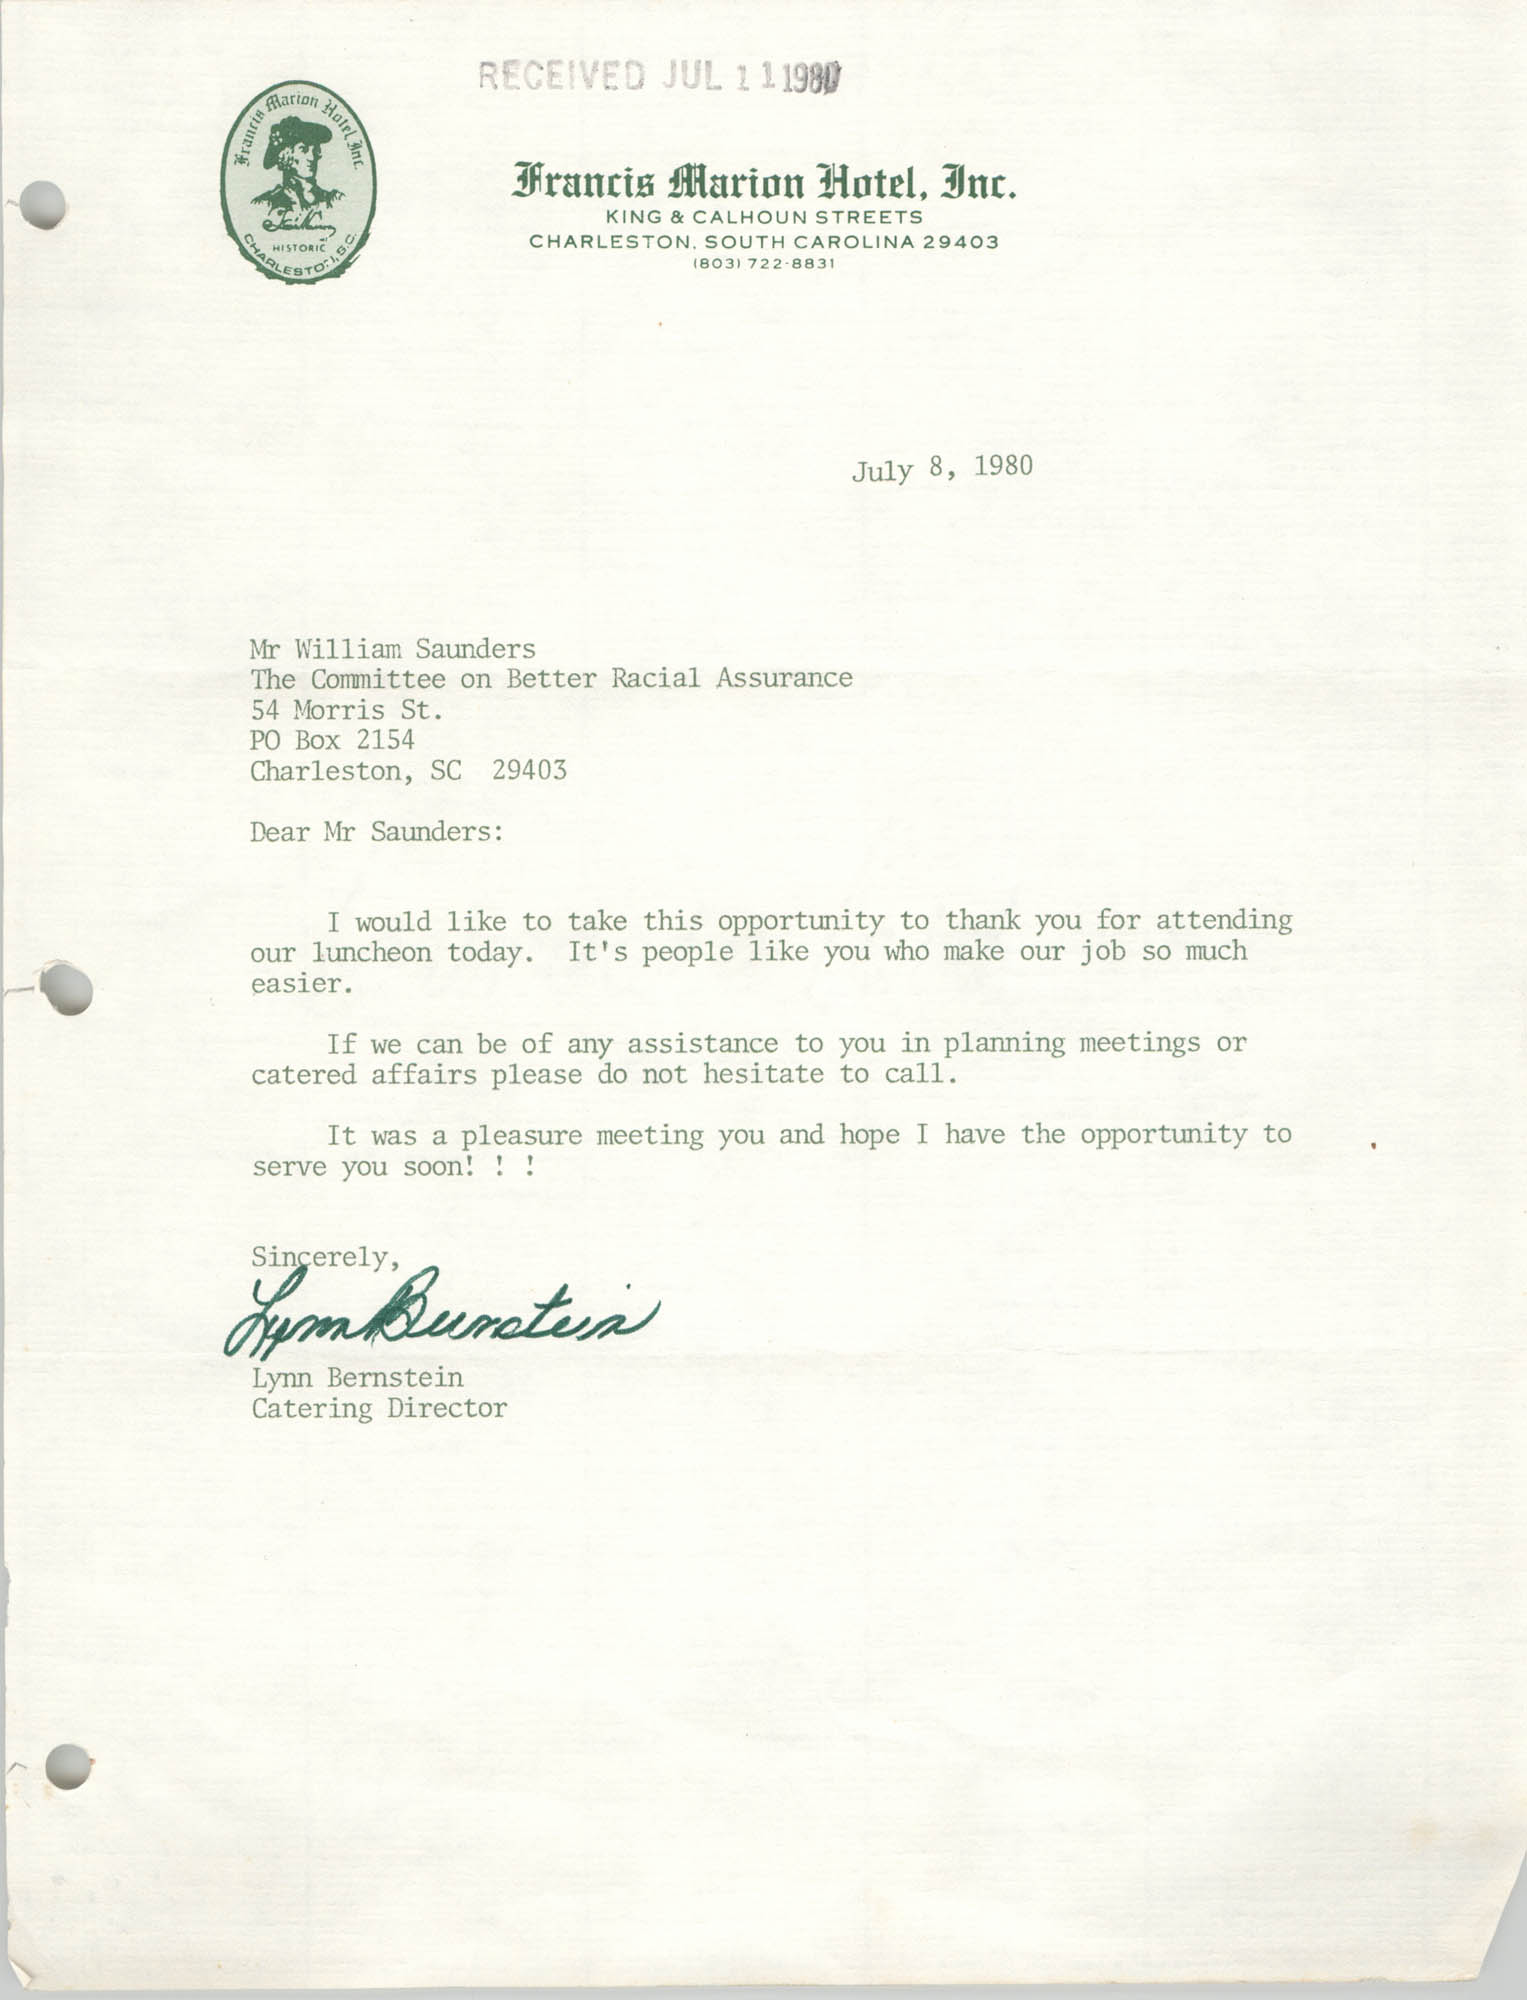 Letter from Lynn Bernstein to William Saunders, July 8, 1980